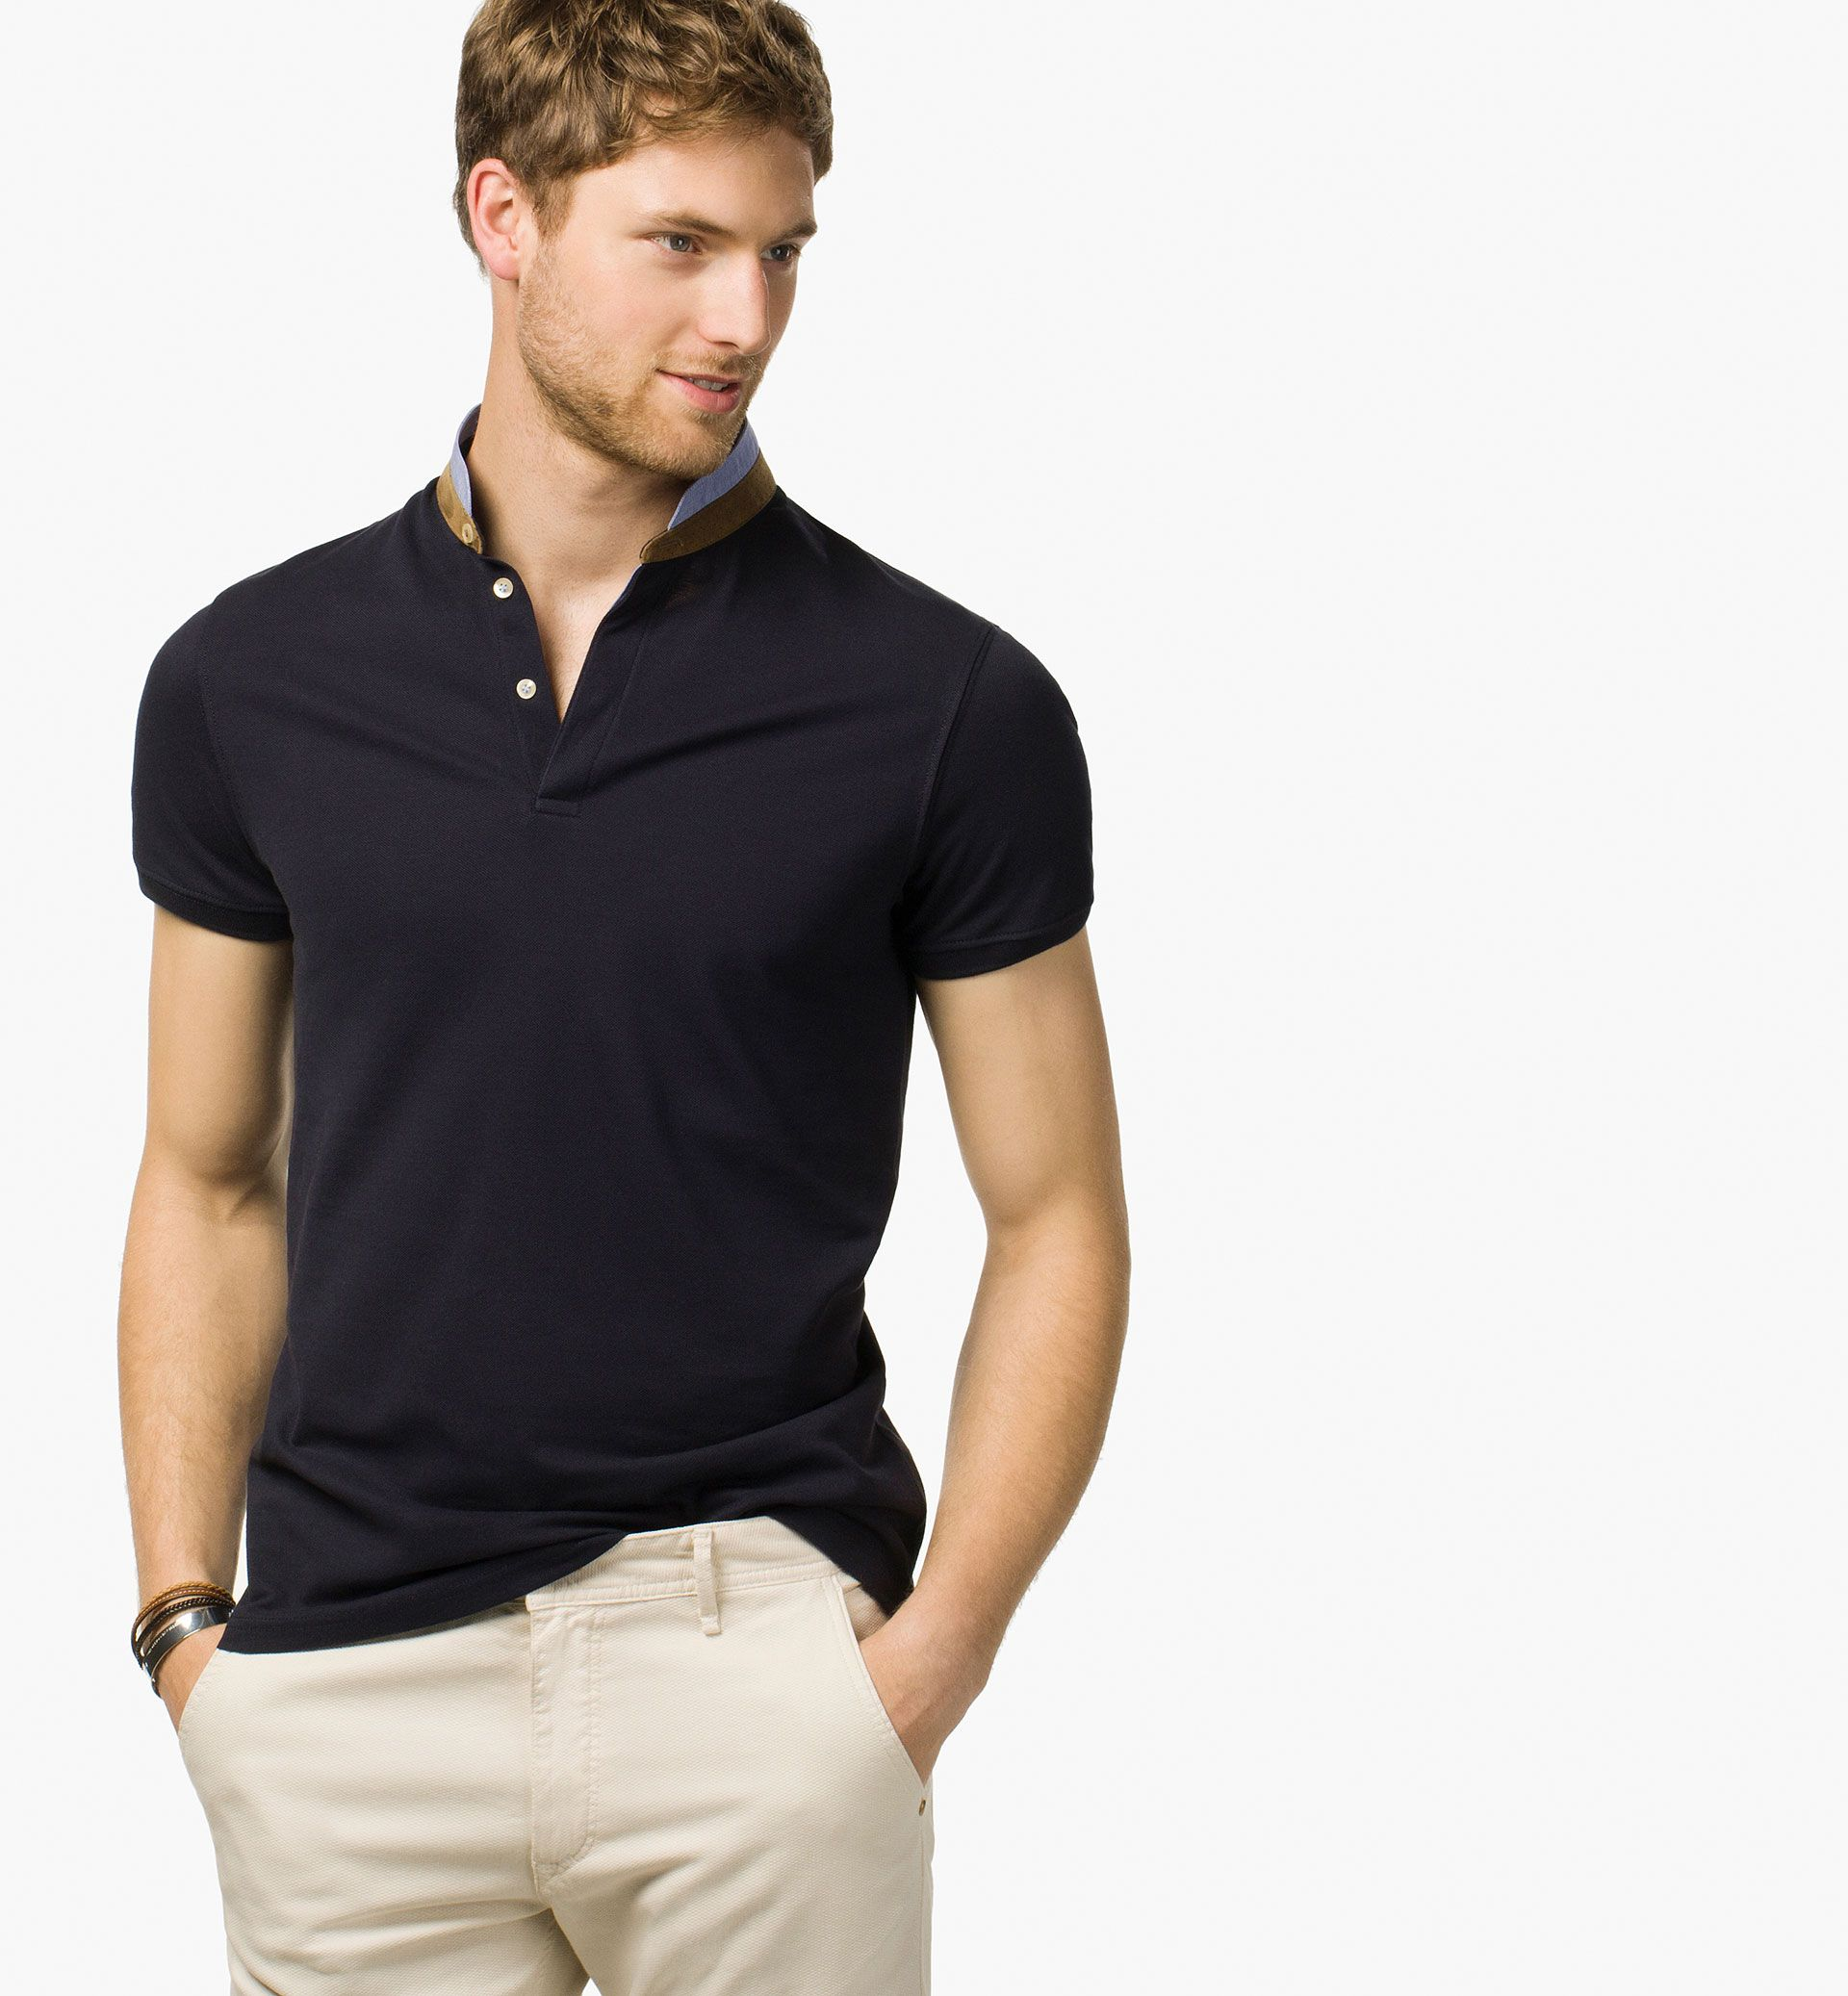 Timeless Winter sale T-shirts and polo shirts for the office at Massimo  Dutti. Striped, slim fit or long sleeve T-shirts and polo shirts for men in  the sale ...